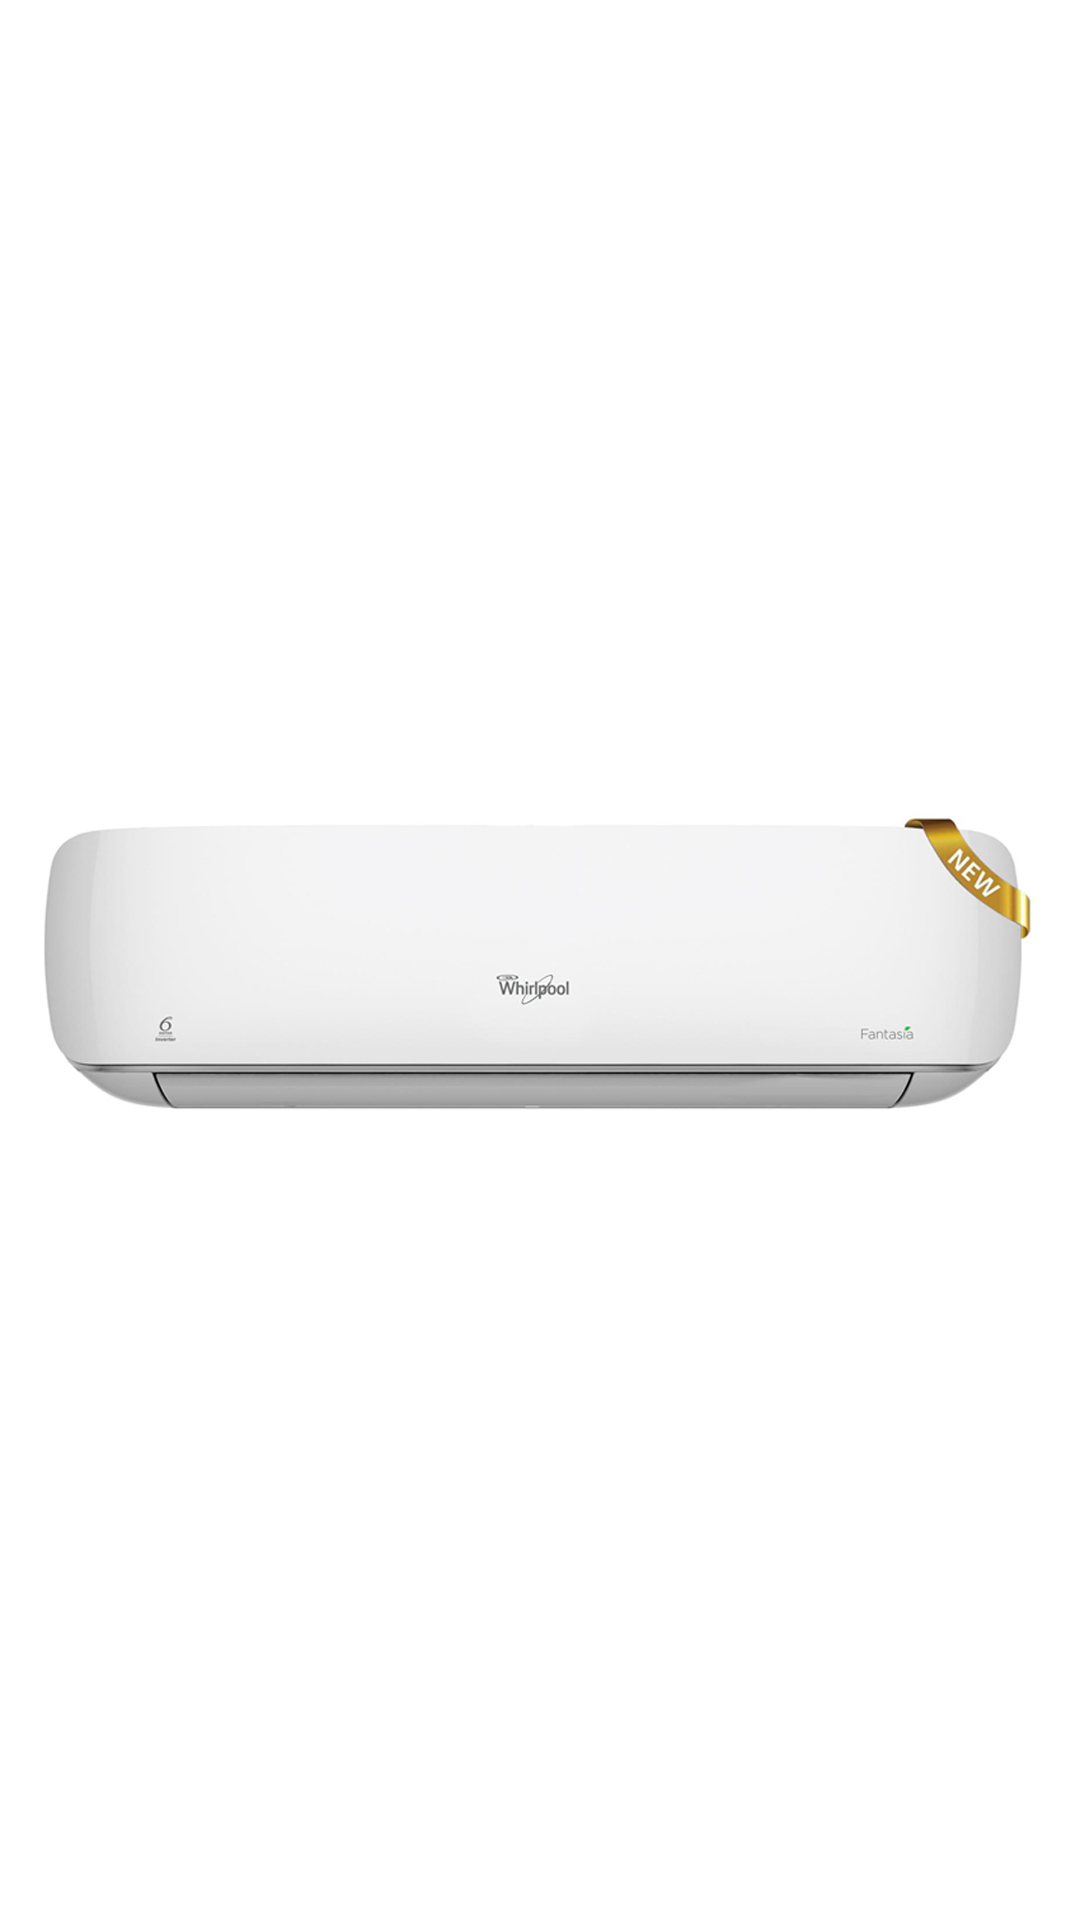 Whirlpool FANTASIA INV 1 Ton Inverter Split AC (White)